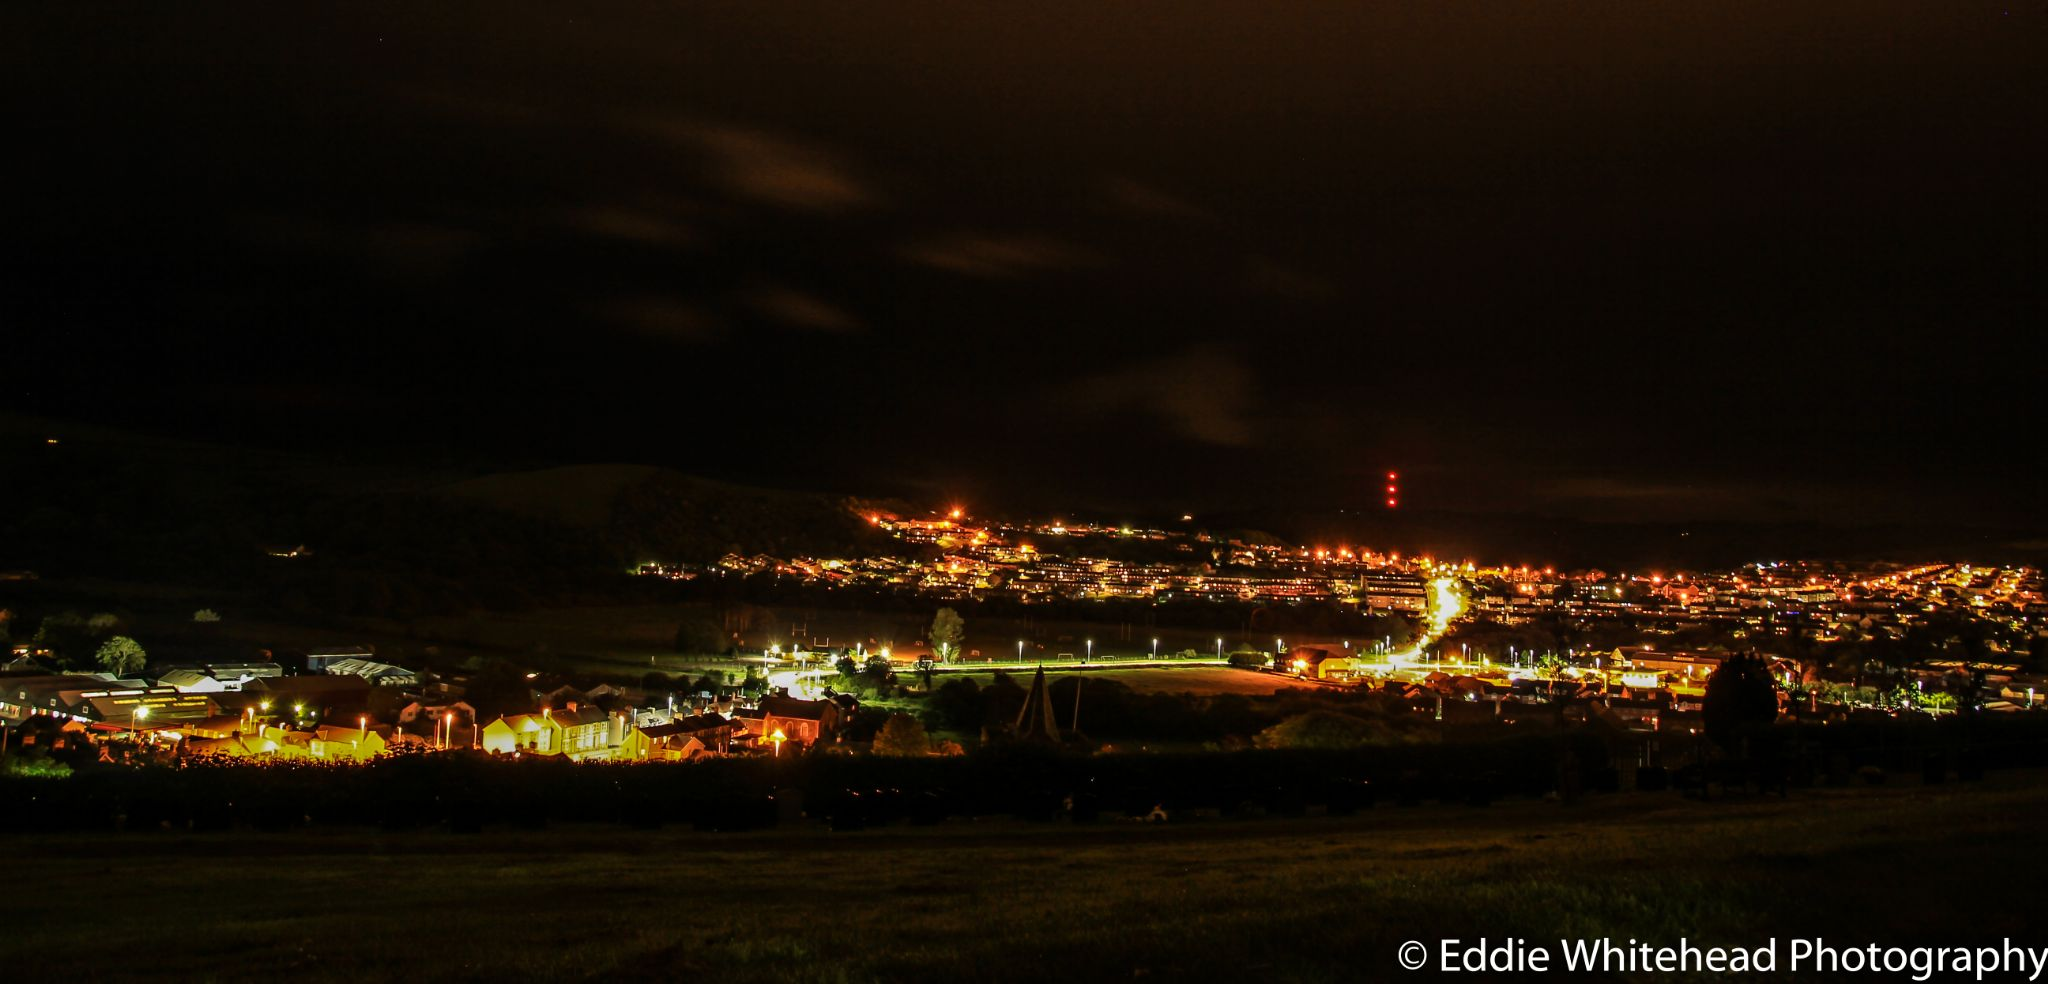 Looking over Aberystwyth by eddiewhiteheadphotography